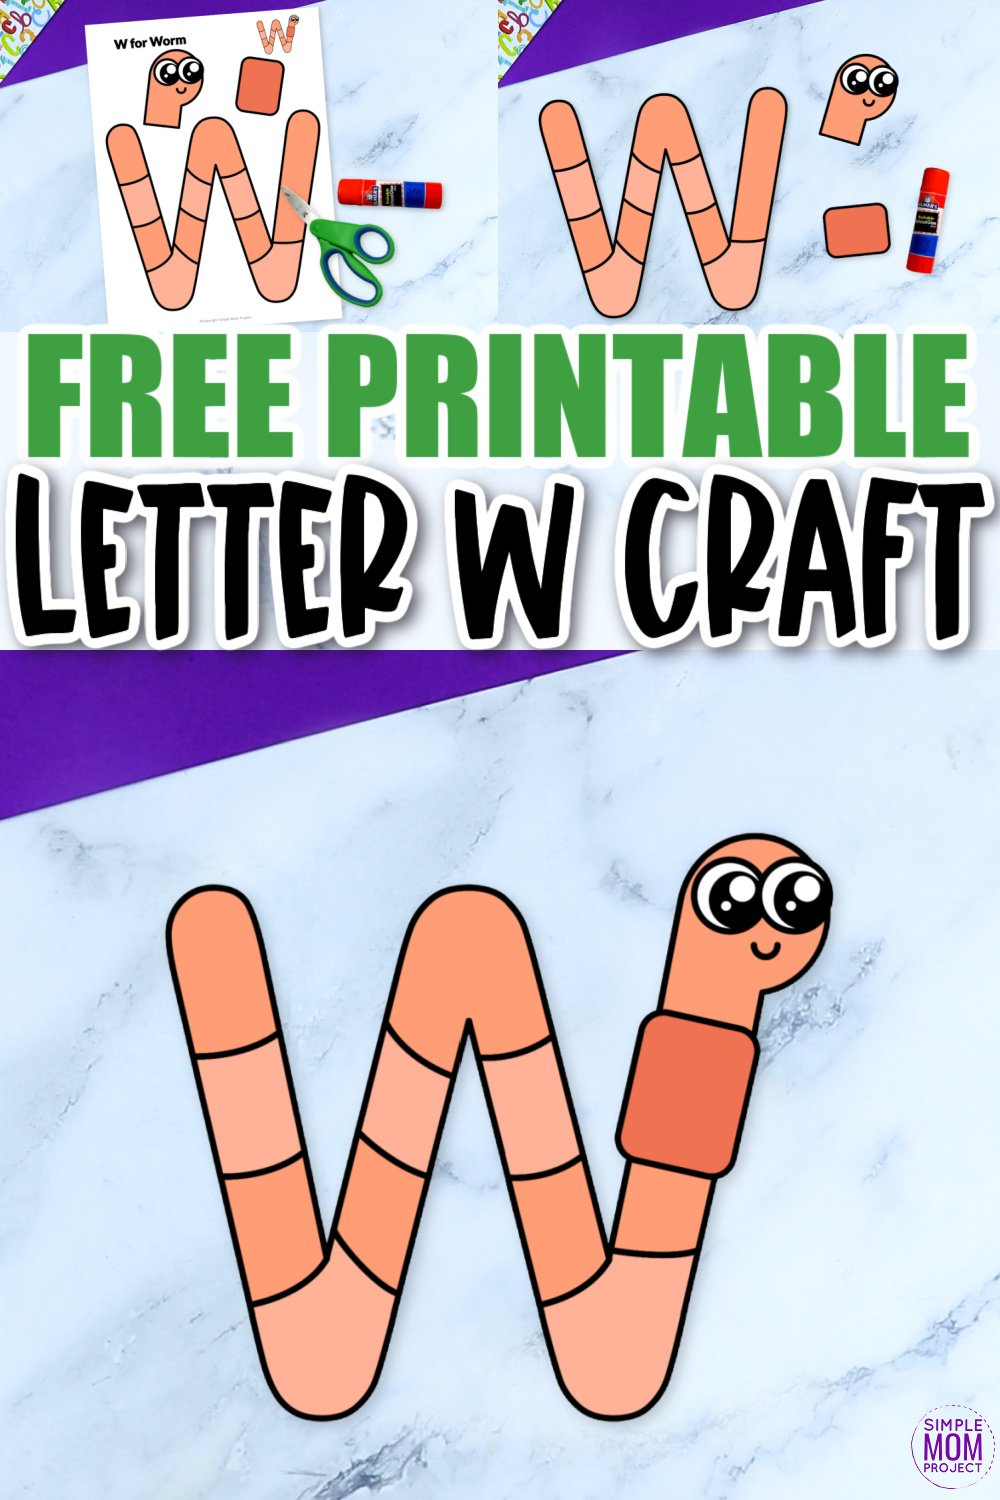 Are you looking for a fun and creative way to teach the alphabet uppercase letter W? Use this fun preschool free printable letter W is for worm learning craft activities. Grab other things that start with the letter W, like a walrus whale or wolf toy as you make this easy letter W craft. Your kindergarten students will also love making this fun printable letter W is for worm craft.